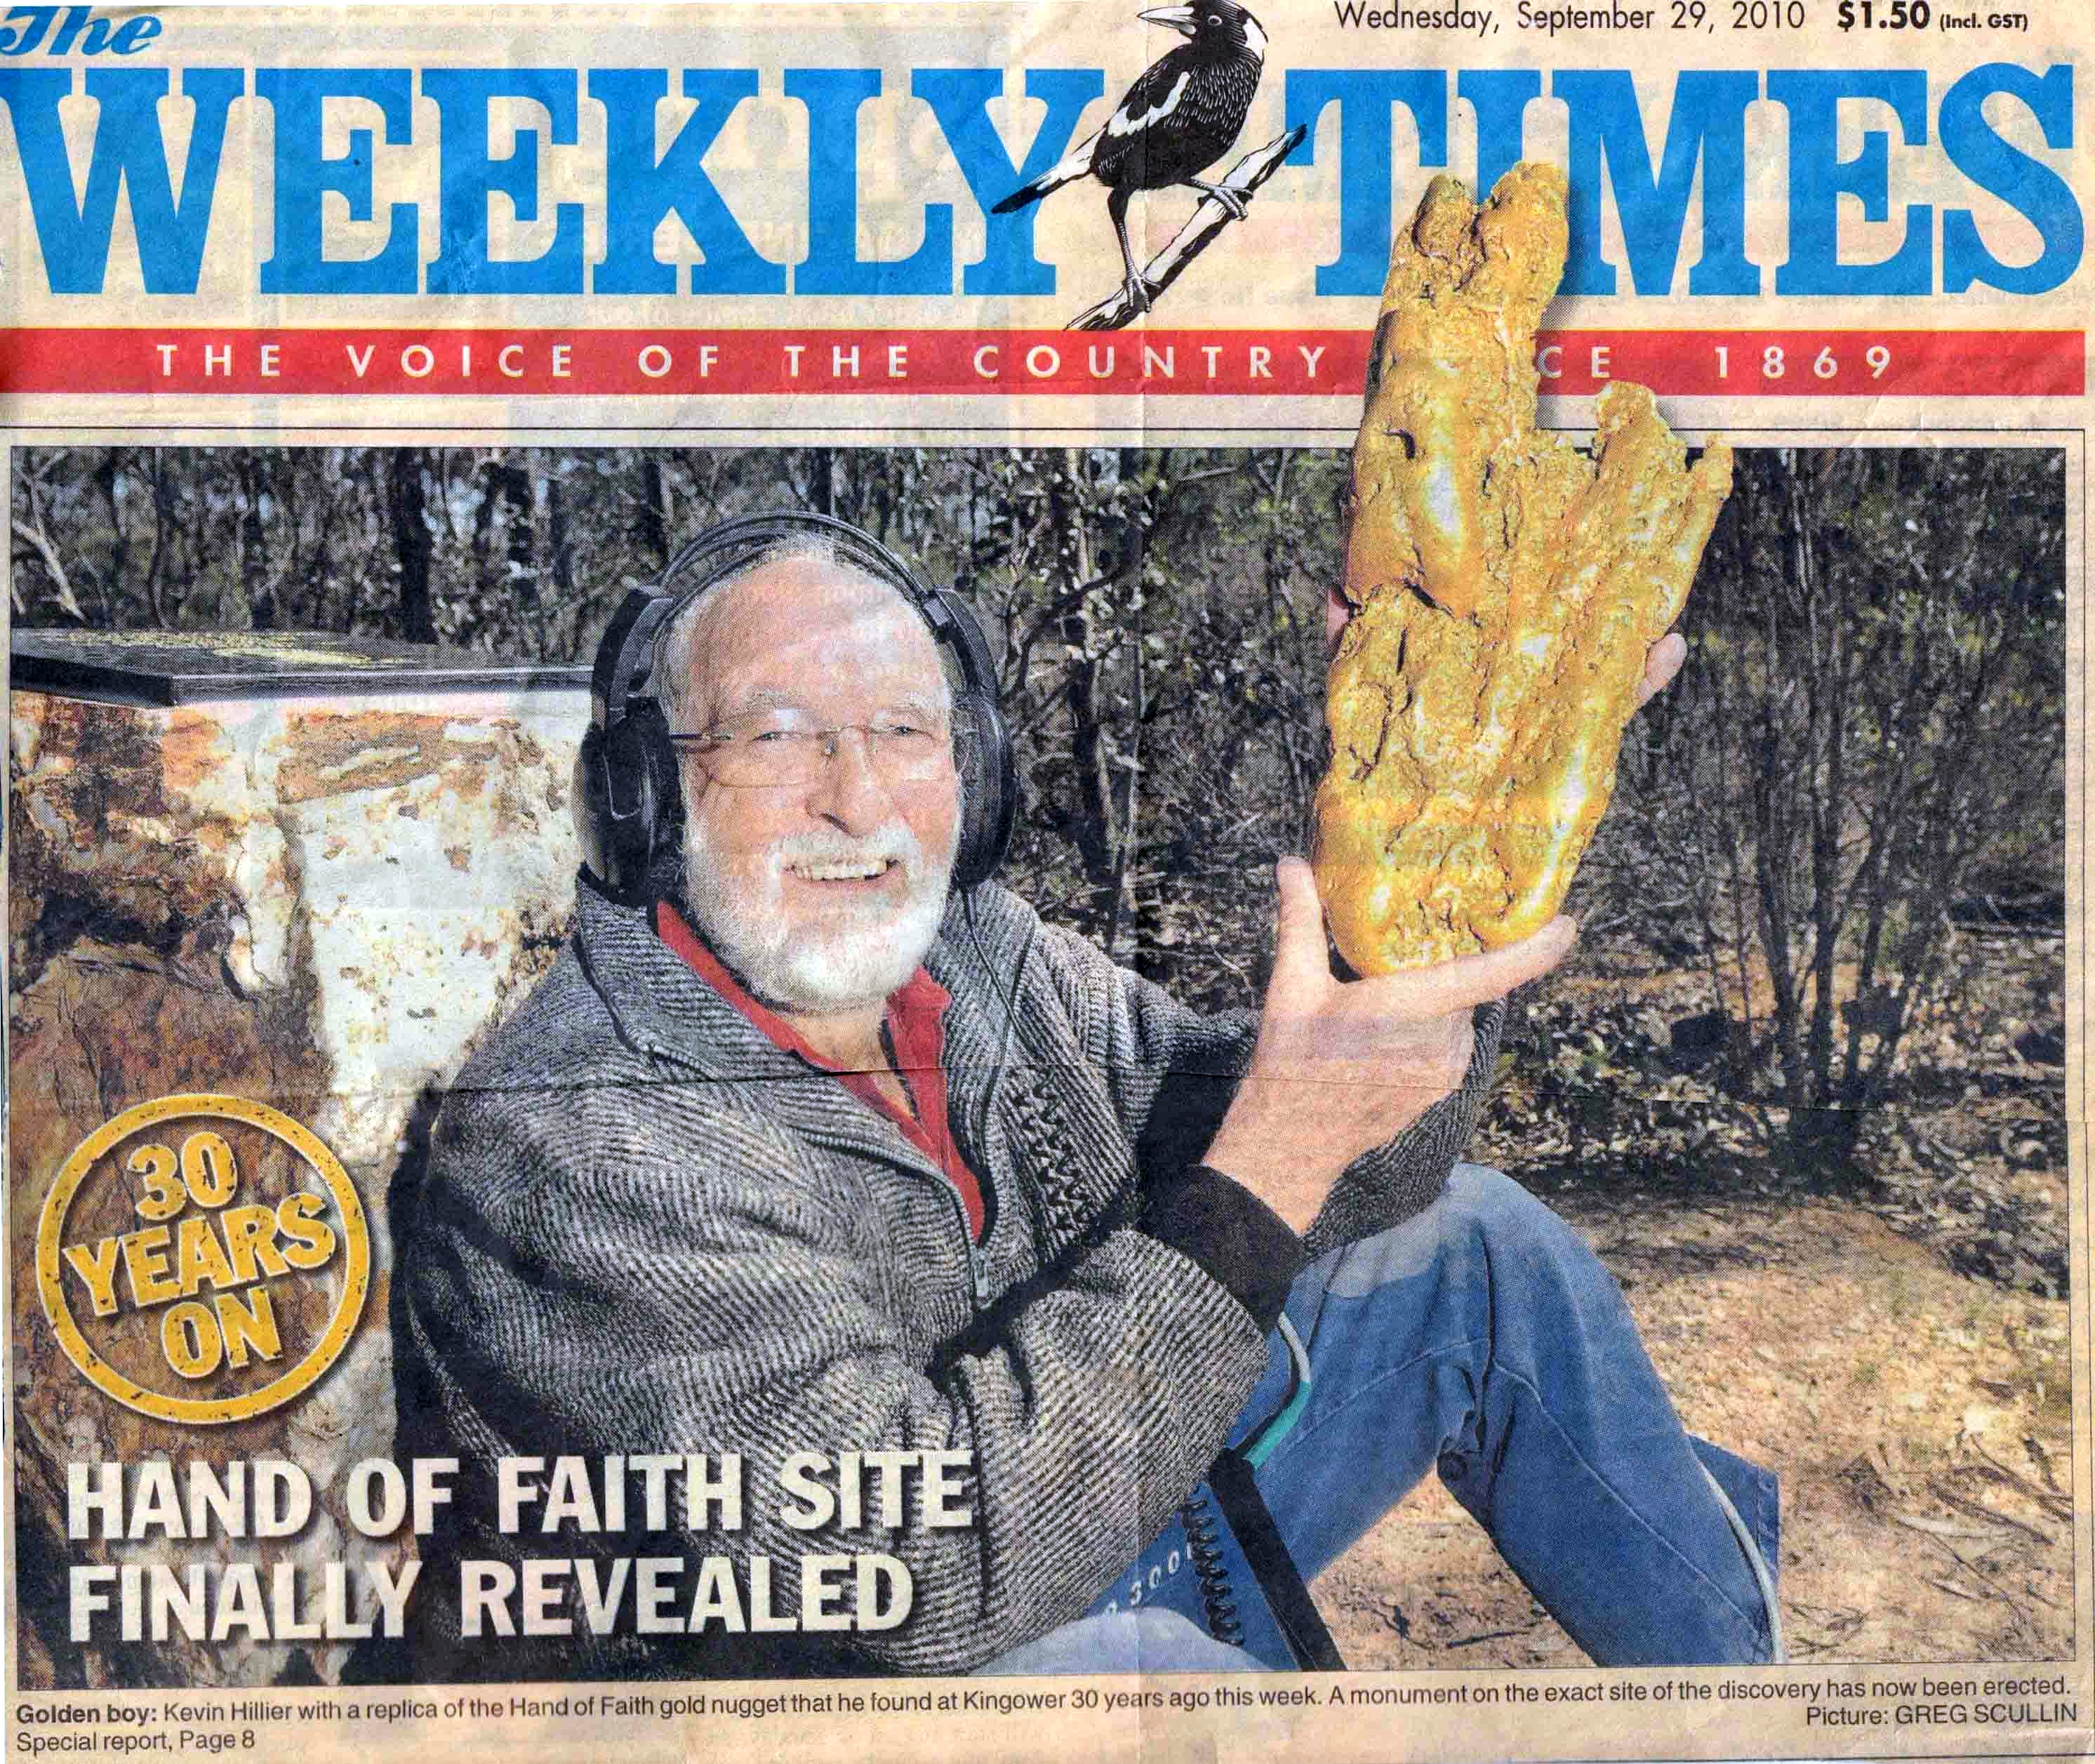 kevin-hillier-with-hand-of-faith-gold-nugget-on-weekly-times-cover